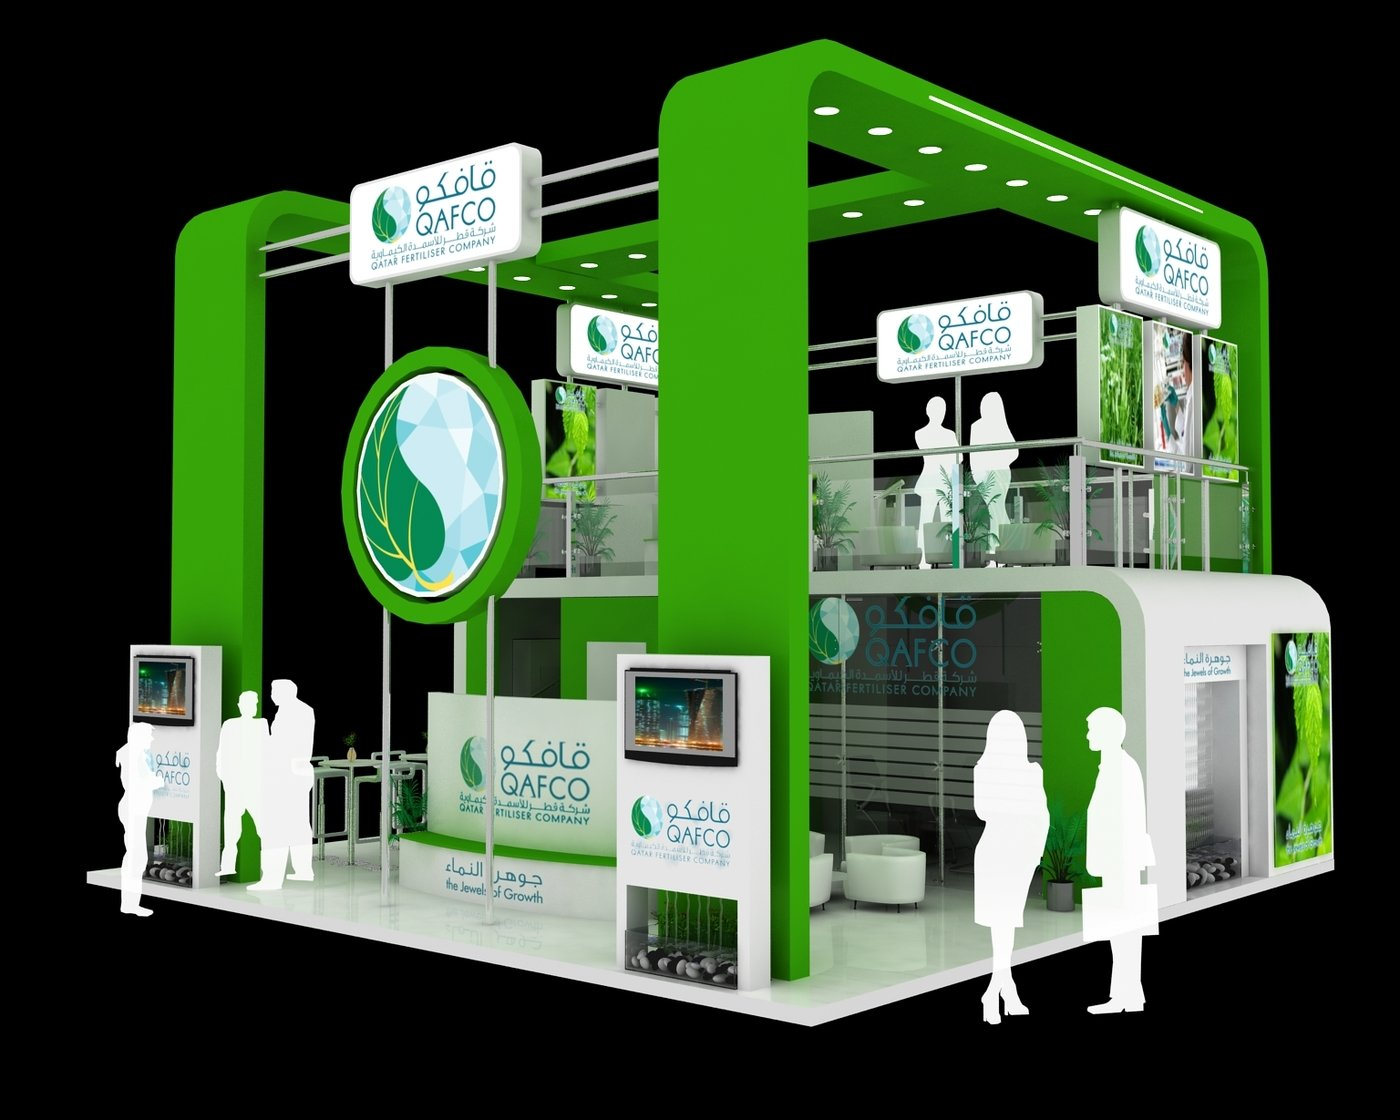 Exhibition Stand Design Decor S L : Exhibition designs by yahkoob valappil at coroflot